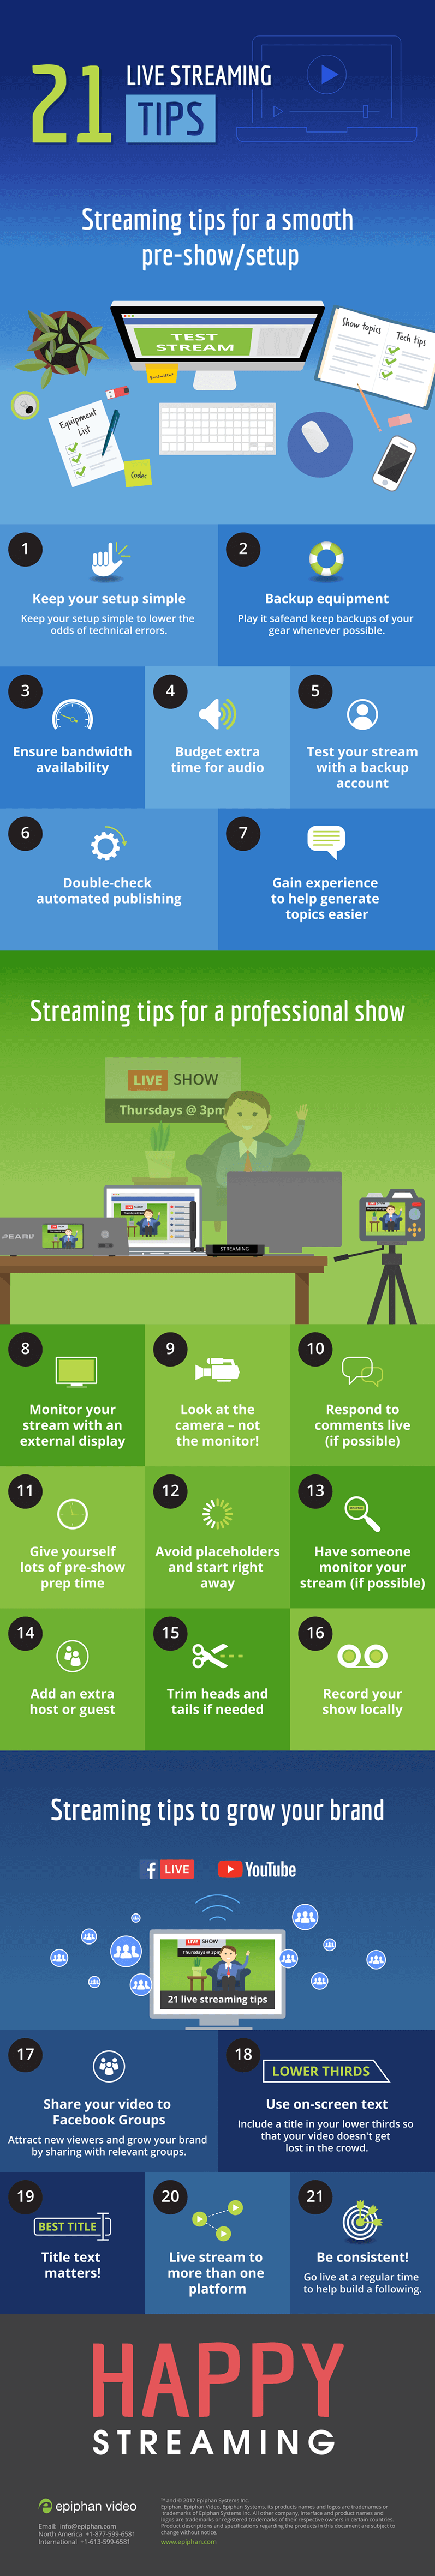 [Infographic] 21 live streaming tips every content creator needs to hear